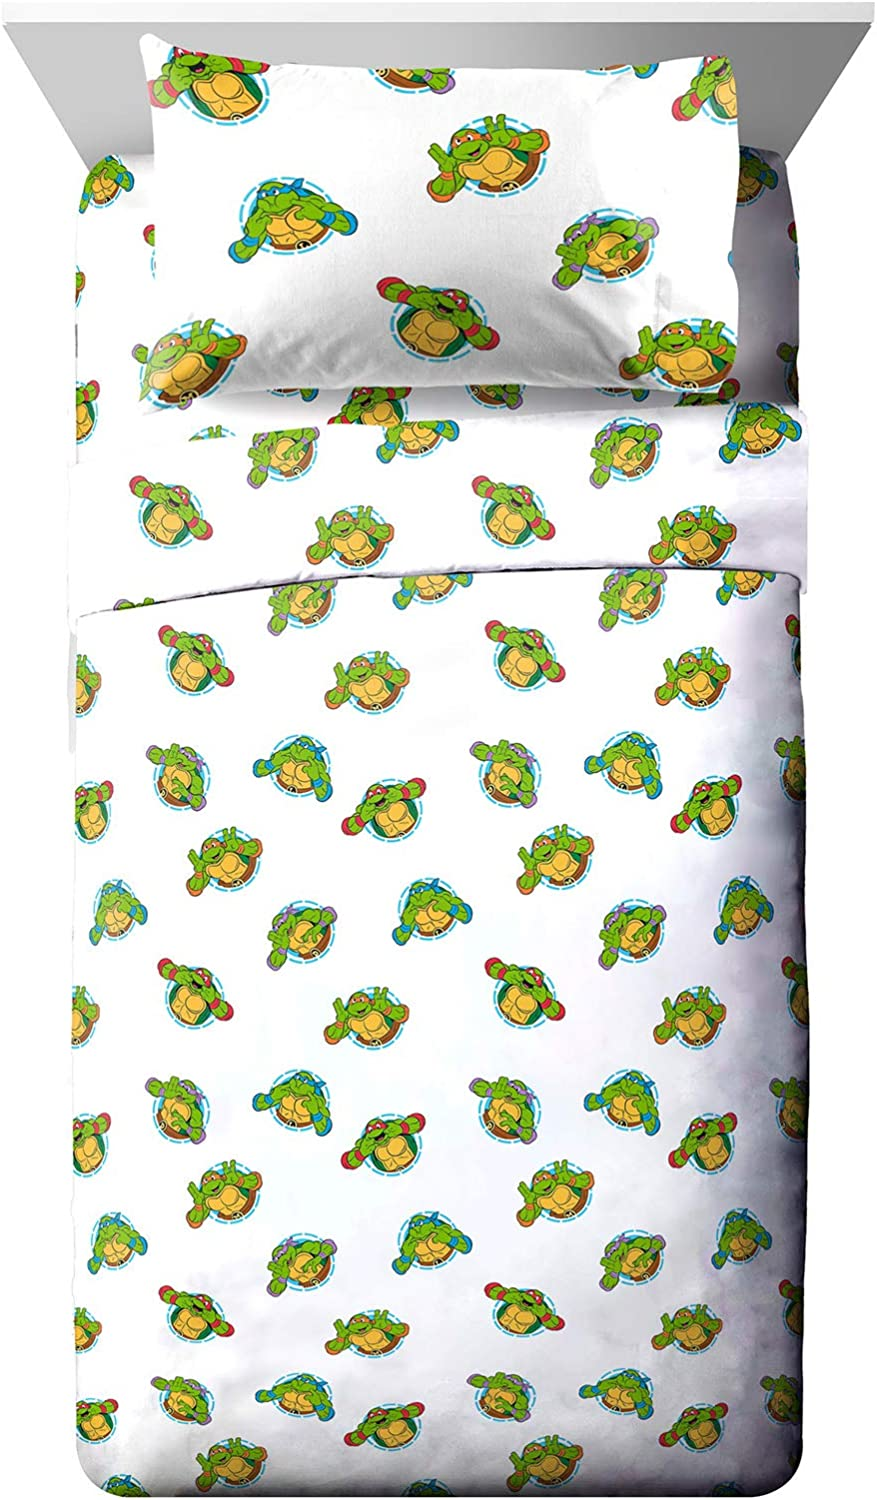 Nickelodeon Teenage Mutant Ninja Turtles Silly Green Toddler Sheet Set - 3 Piece Set Super Soft and Cozy Kid's Bedding - Fade Resistant Microfiber Sheets (Official Nickelodeon Product)